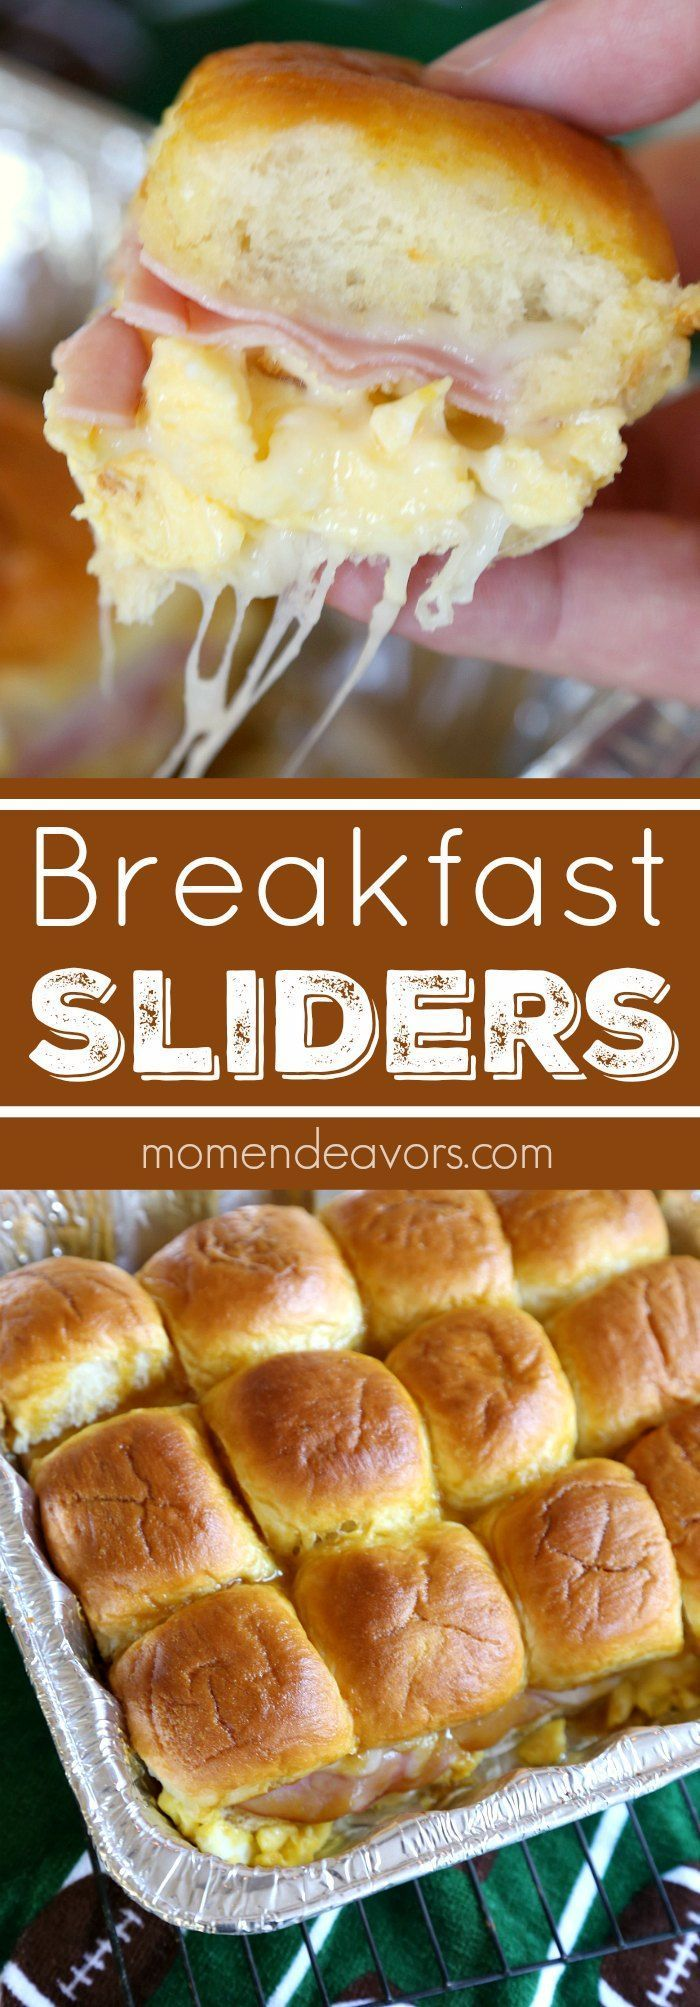 cool Ham, Egg, & Cheese Breakfast Sliders  - perfect for gameday breakfast tailga...